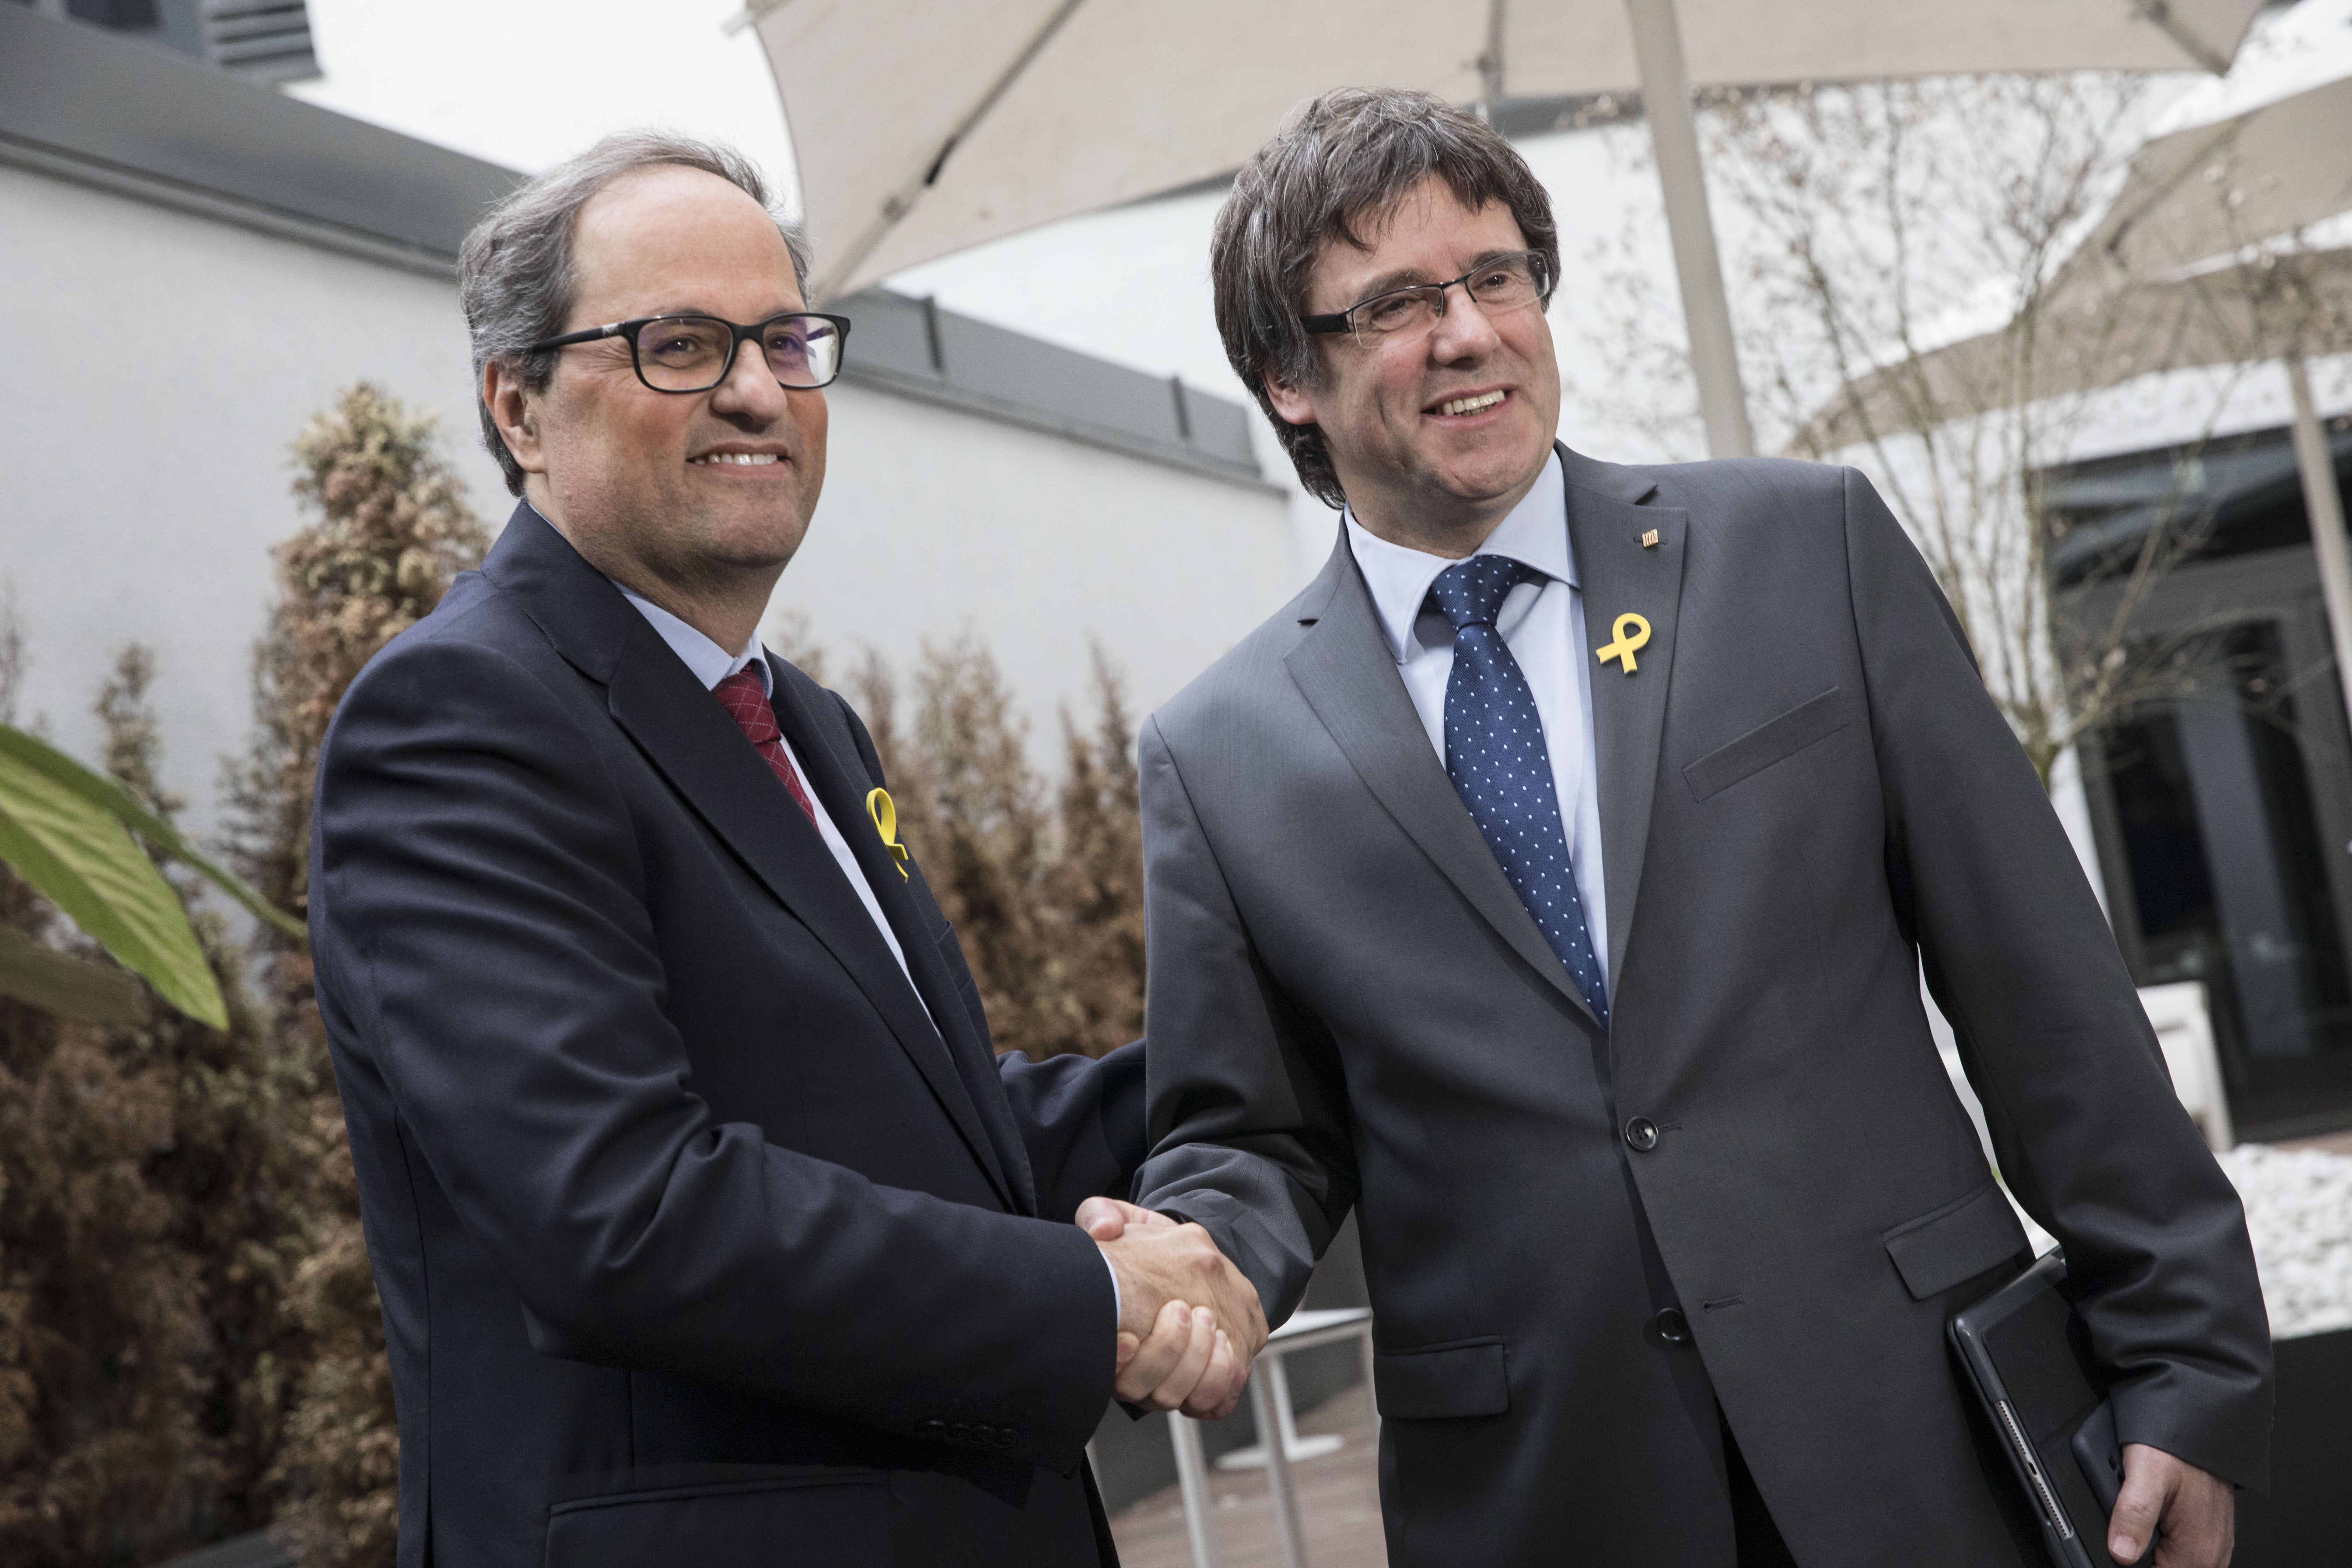 epa06739339 Former President of the Generalitat of Catalonia Carles Puigdemont (R) and newly elected president Quim Torra hold a press conference at the Sana Hotel in Berlin, Germany, 15 May 2018. Torra was sworn in the day before, 14 May, by a small margin in the Catalan parliament and is expected to continue in a hard separatist line against Spain. Puigdemont resides in Berlin since he is formally in detention and may not leave Germany until German justice decides on his extradition to Spain according to a European arrest warrant.  EPA-EFE/OMER MESSINGER